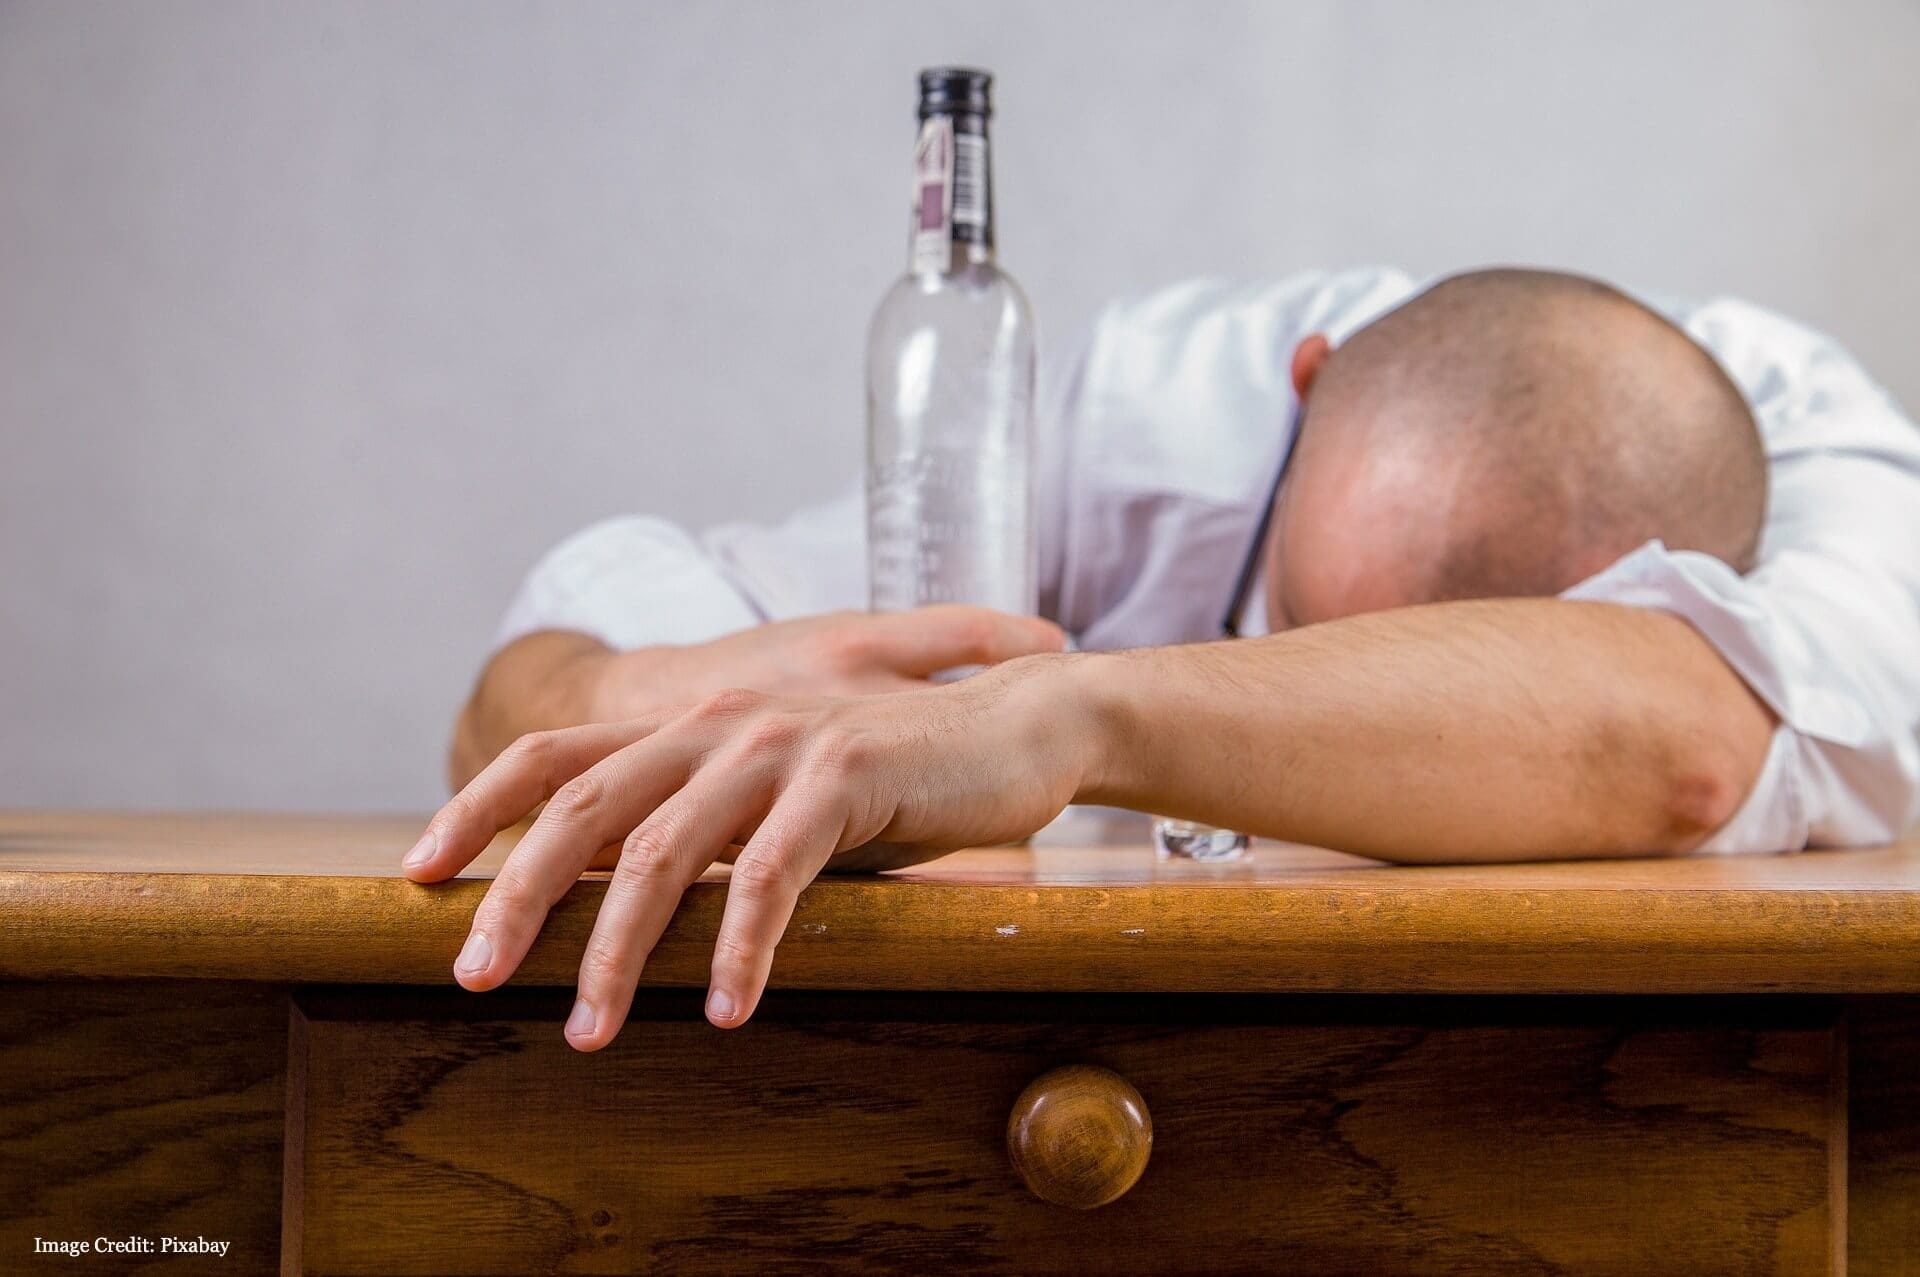 Alcohol Abuse & Alcoholism Treatment in Newport Beach How To Stop Drinking